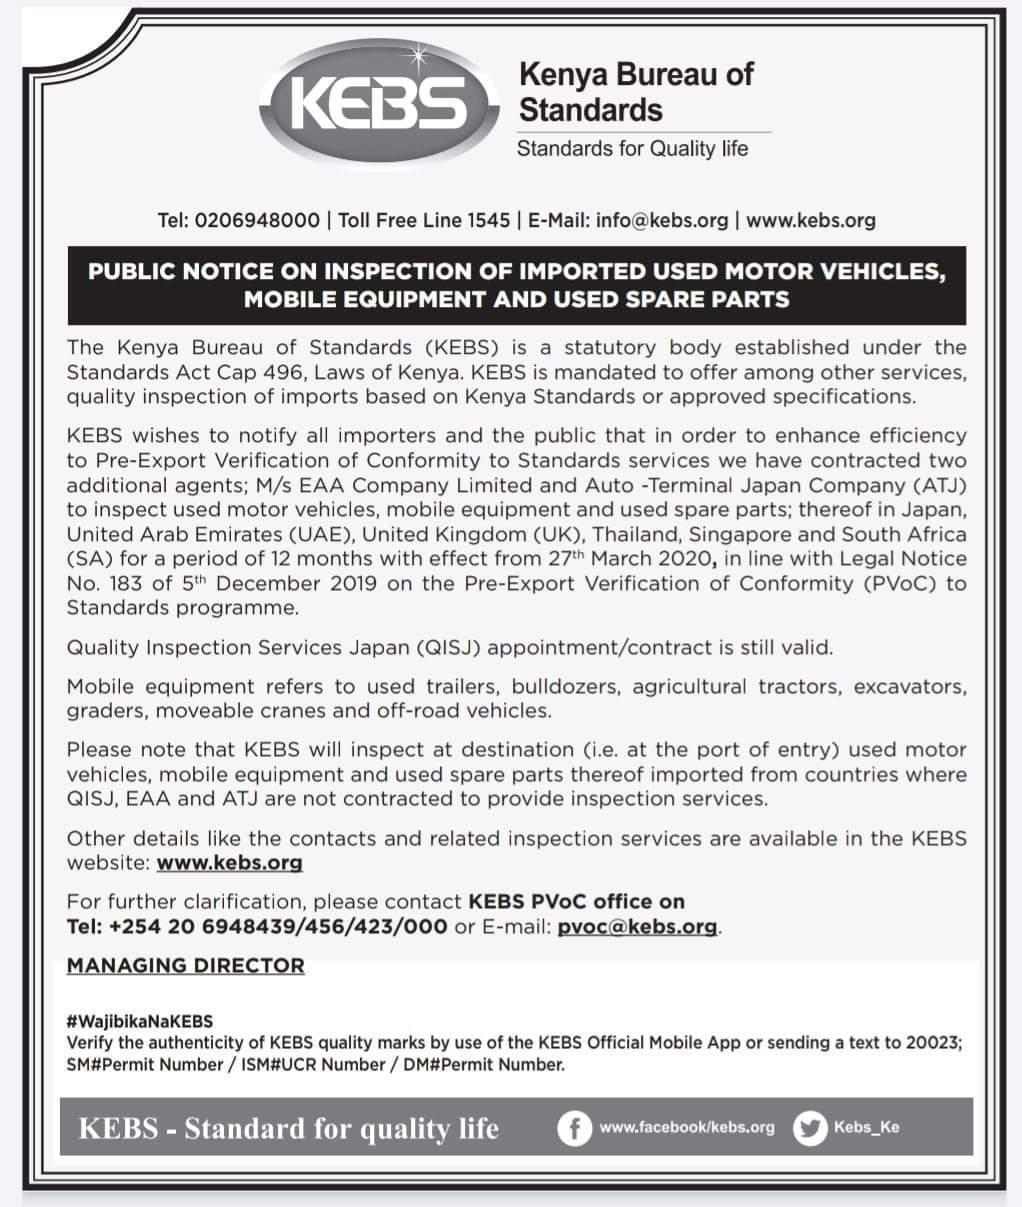 image 2020 03 31T09 13 26 122Z - NTSA and KEBS adjust to COVID-19 pandemic